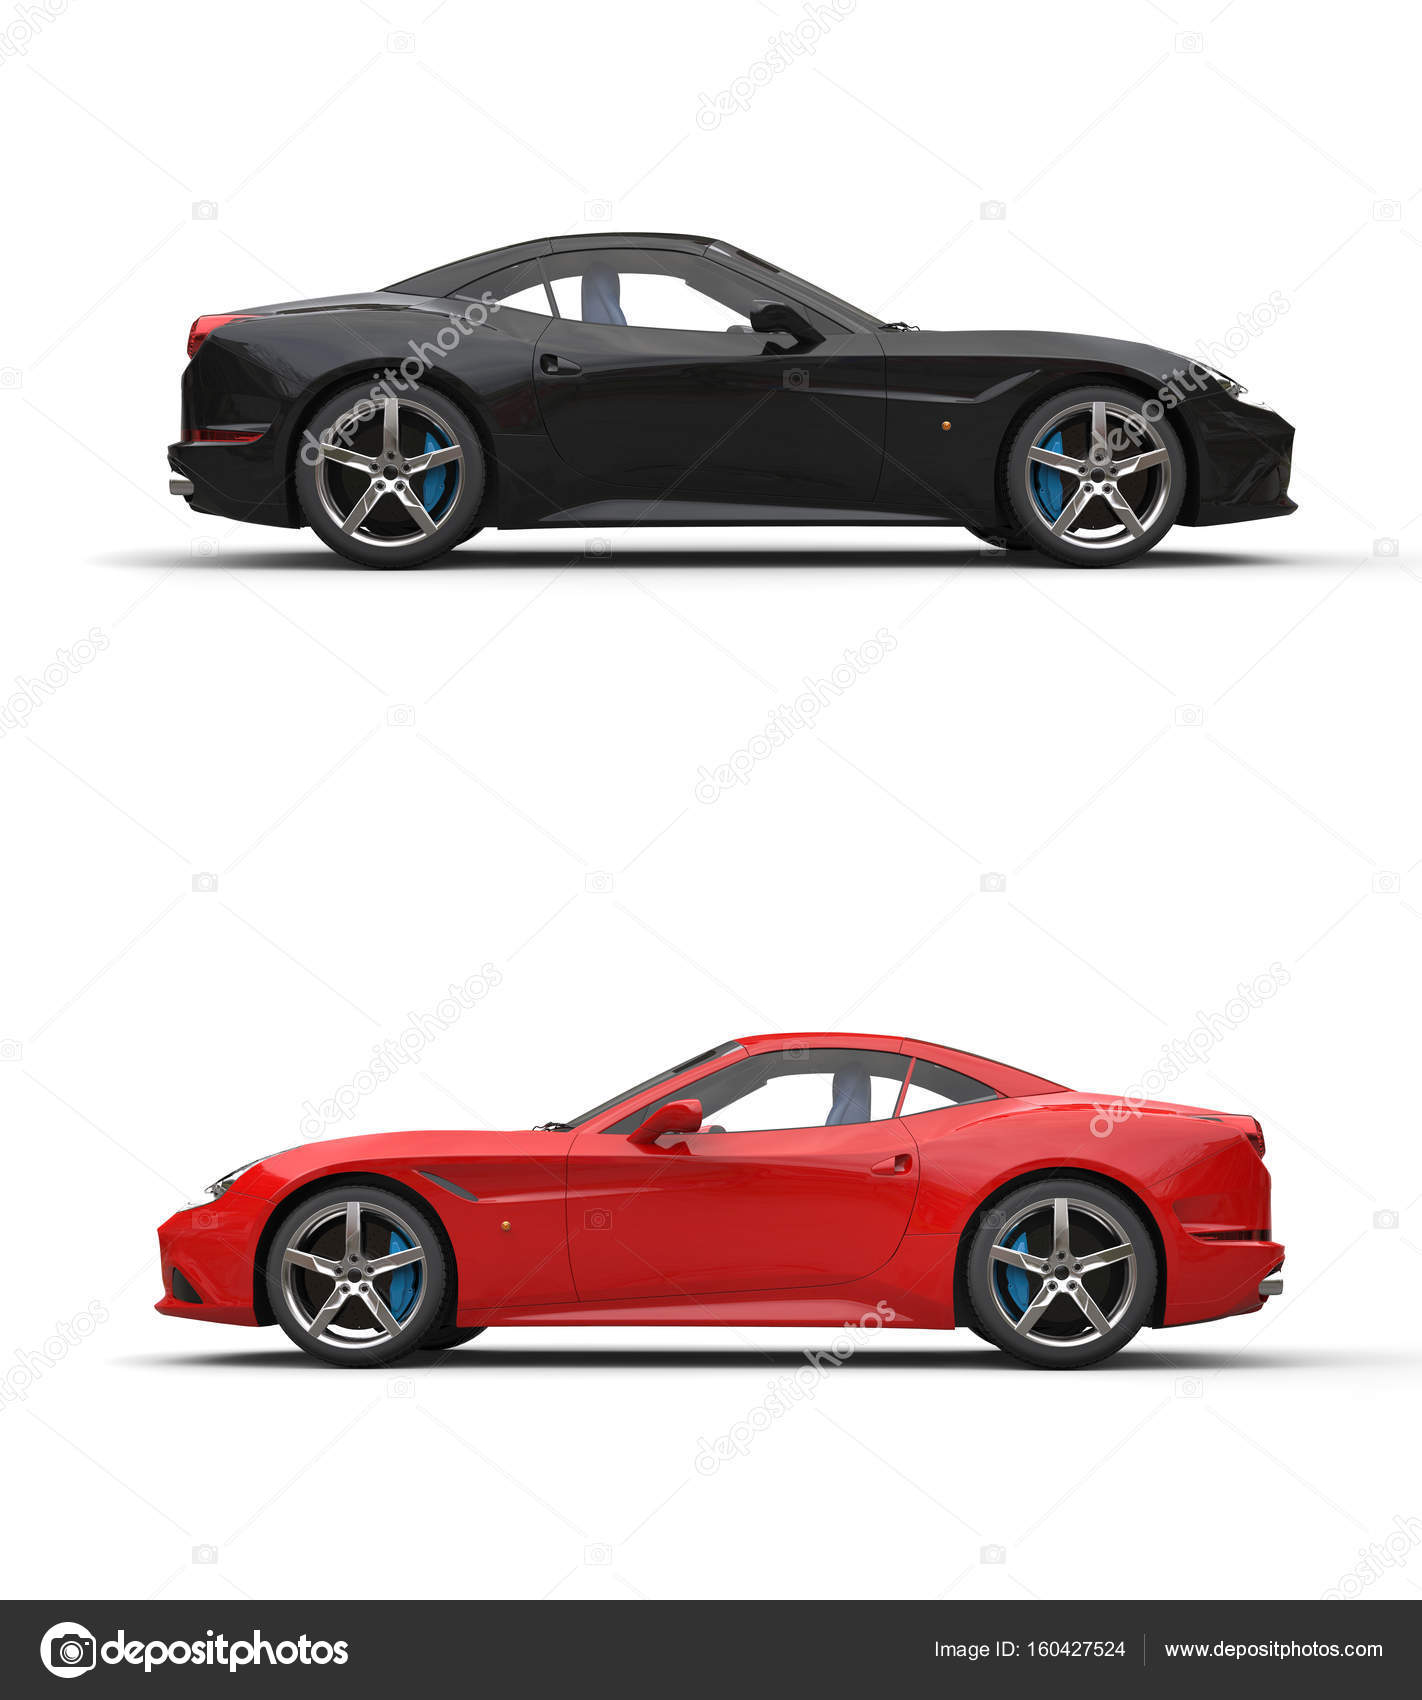 Black And Red Sport Cars Side View Stock Photo C Trimitrius 160427524